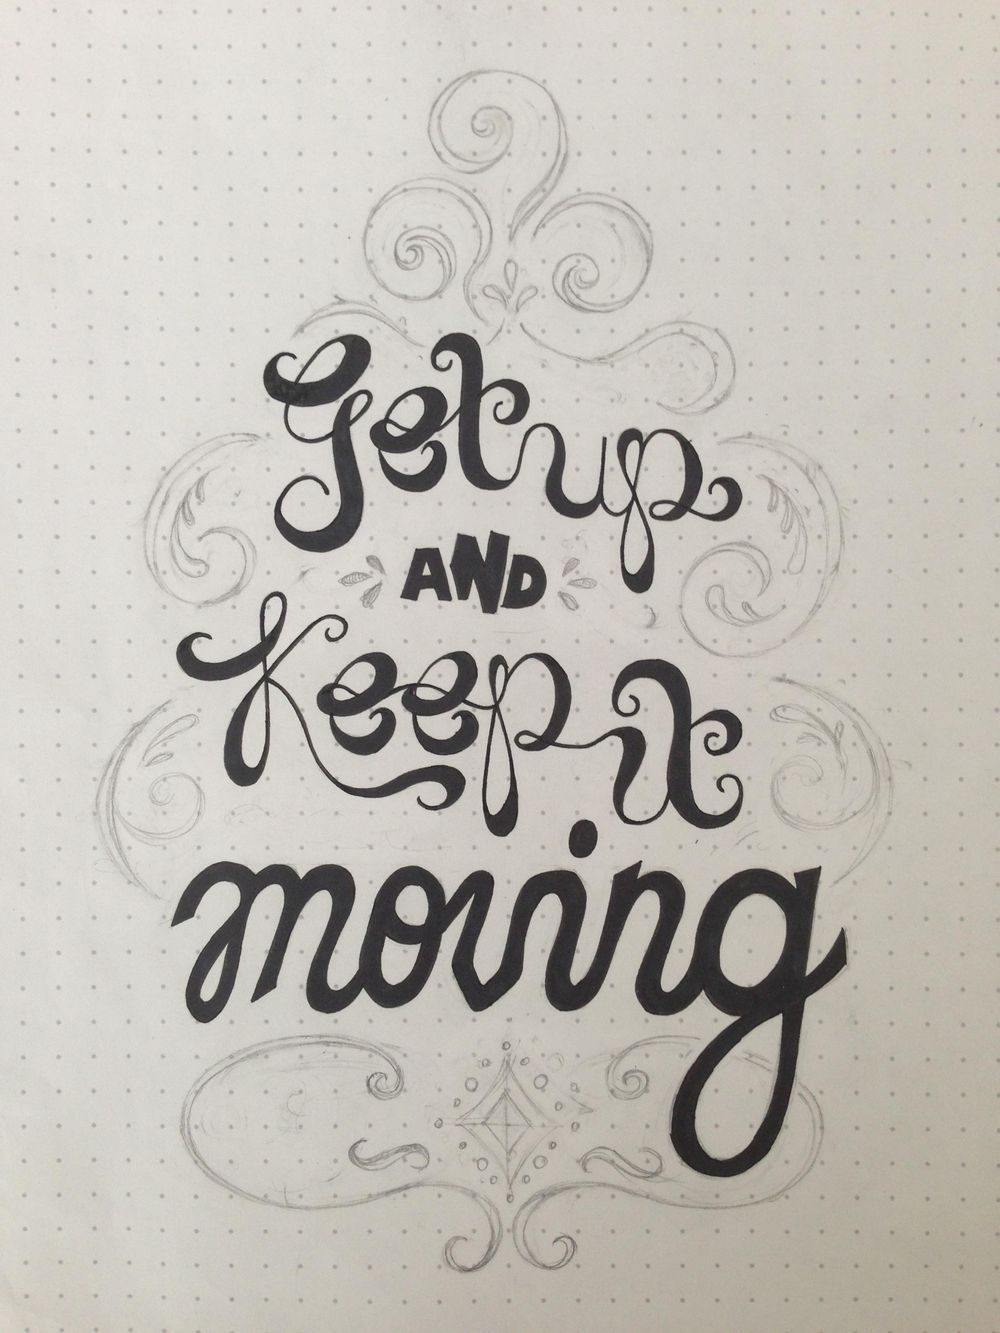 Get Up & Keep It Moving - image 2 - student project